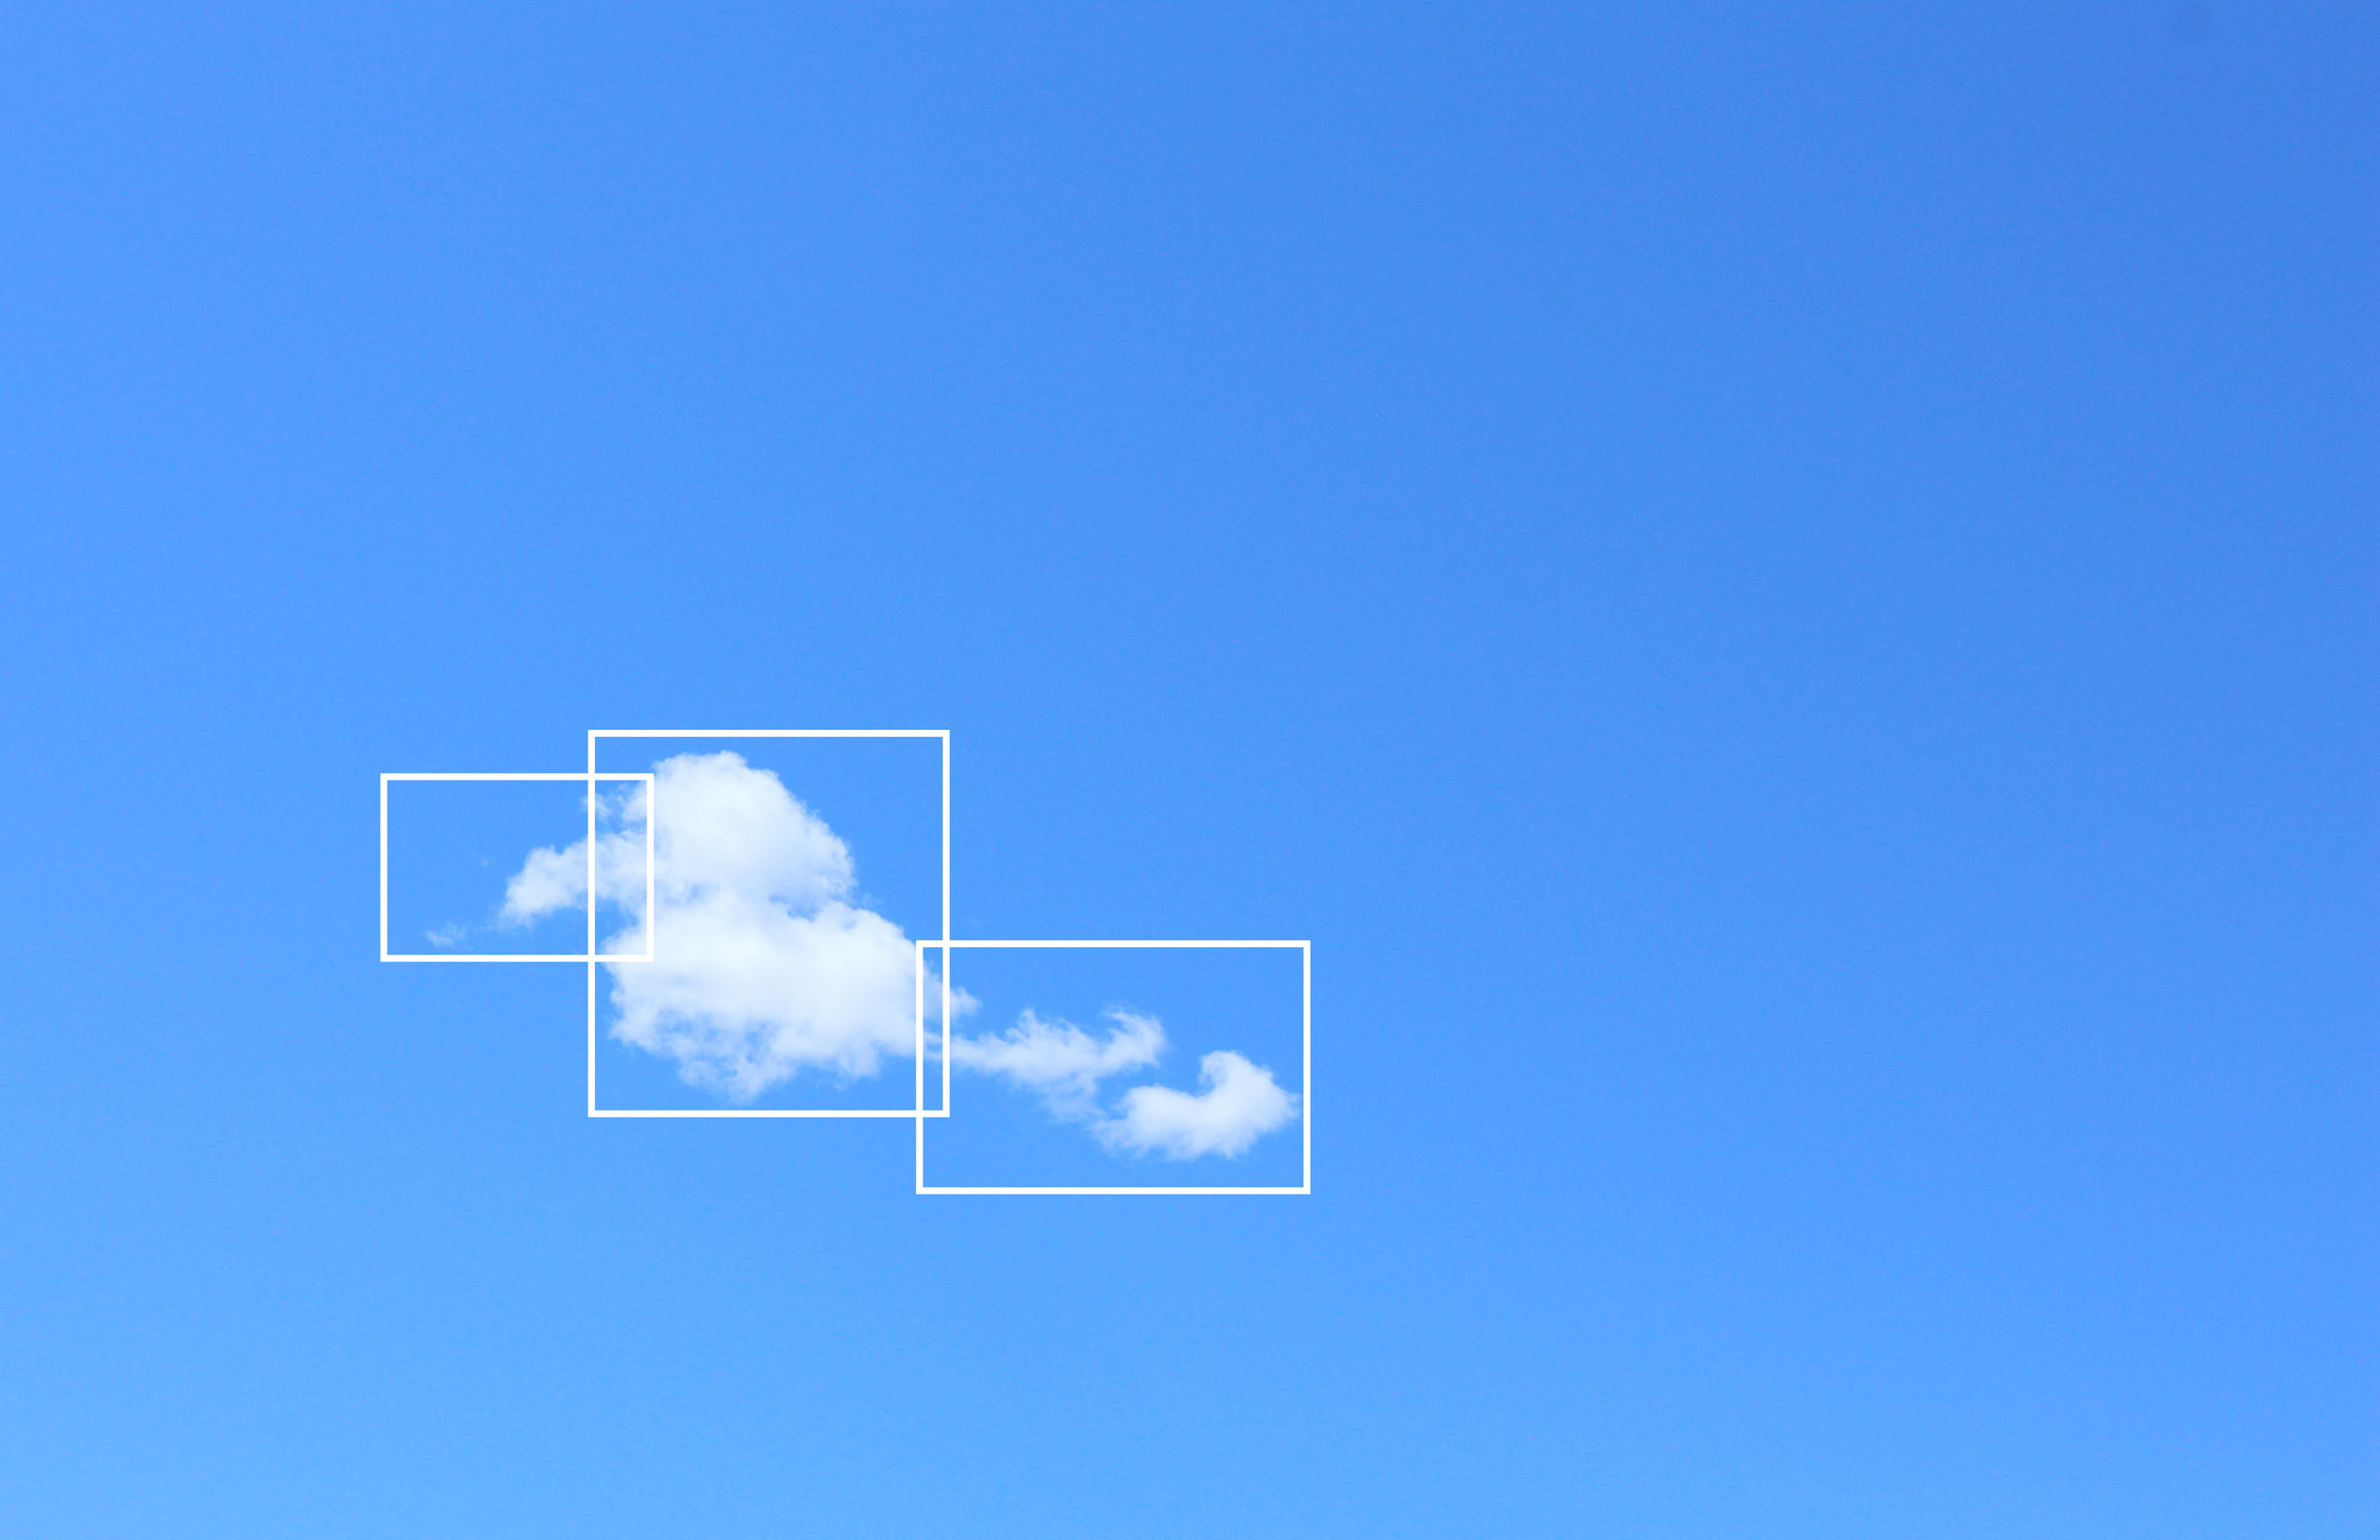 cloudtrackingwithsquares.jpg